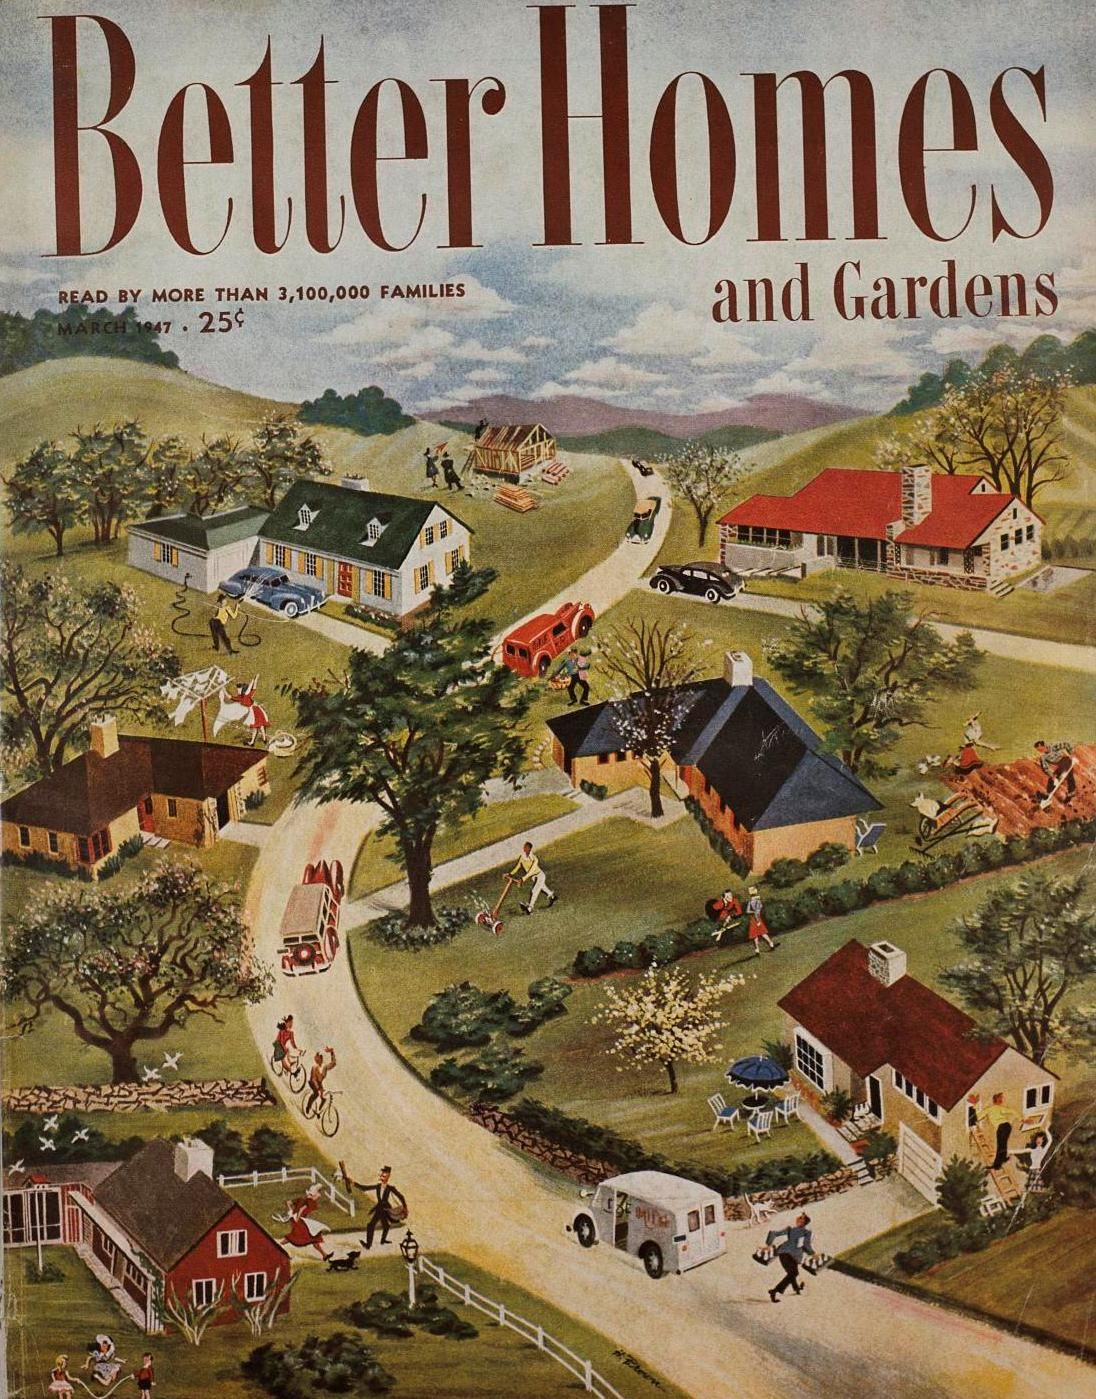 Vintage bhg covers march1947 a special memory for me Better homes and gardens current issue